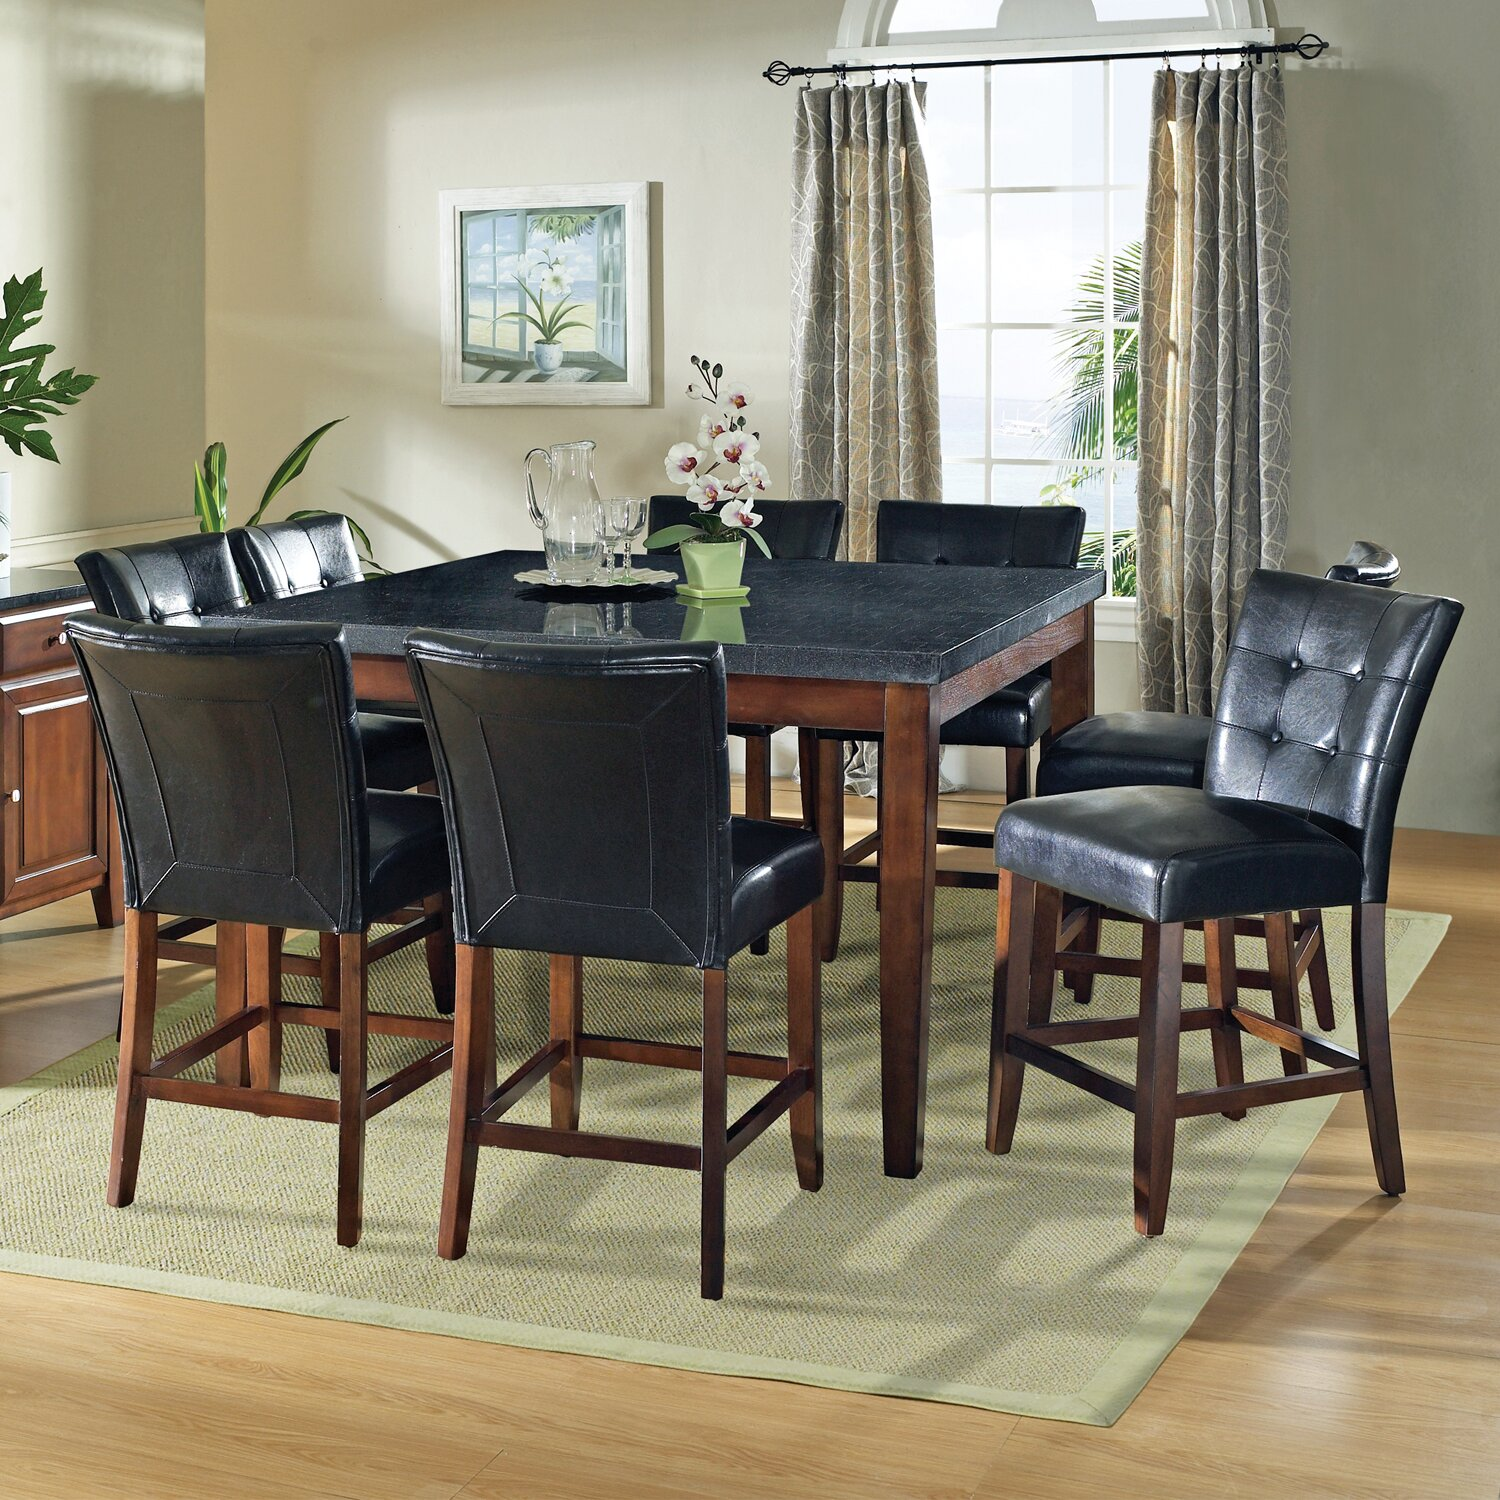 Darby home co matheson 5 piece counter height dining set for 9 piece dining room set counter height